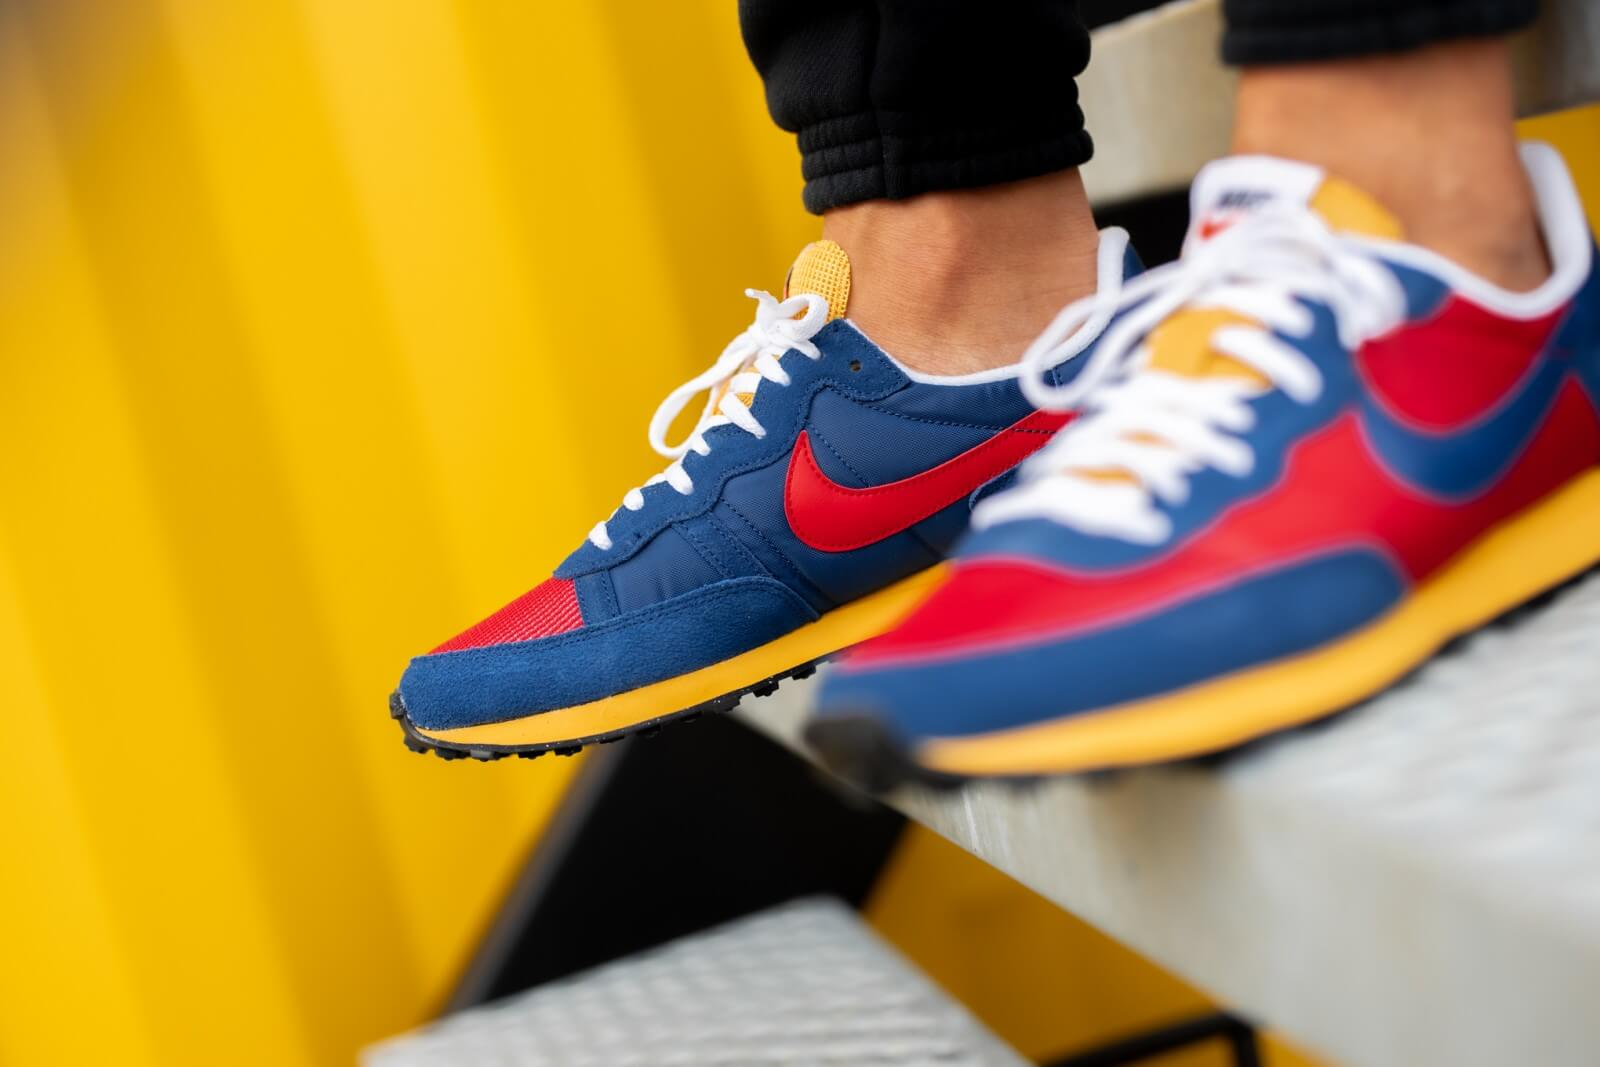 Nike Challenger OG - University Red/Coastal Blue/Solar Flare #CW7645-600-Preorder Item-Navy Selected Shop